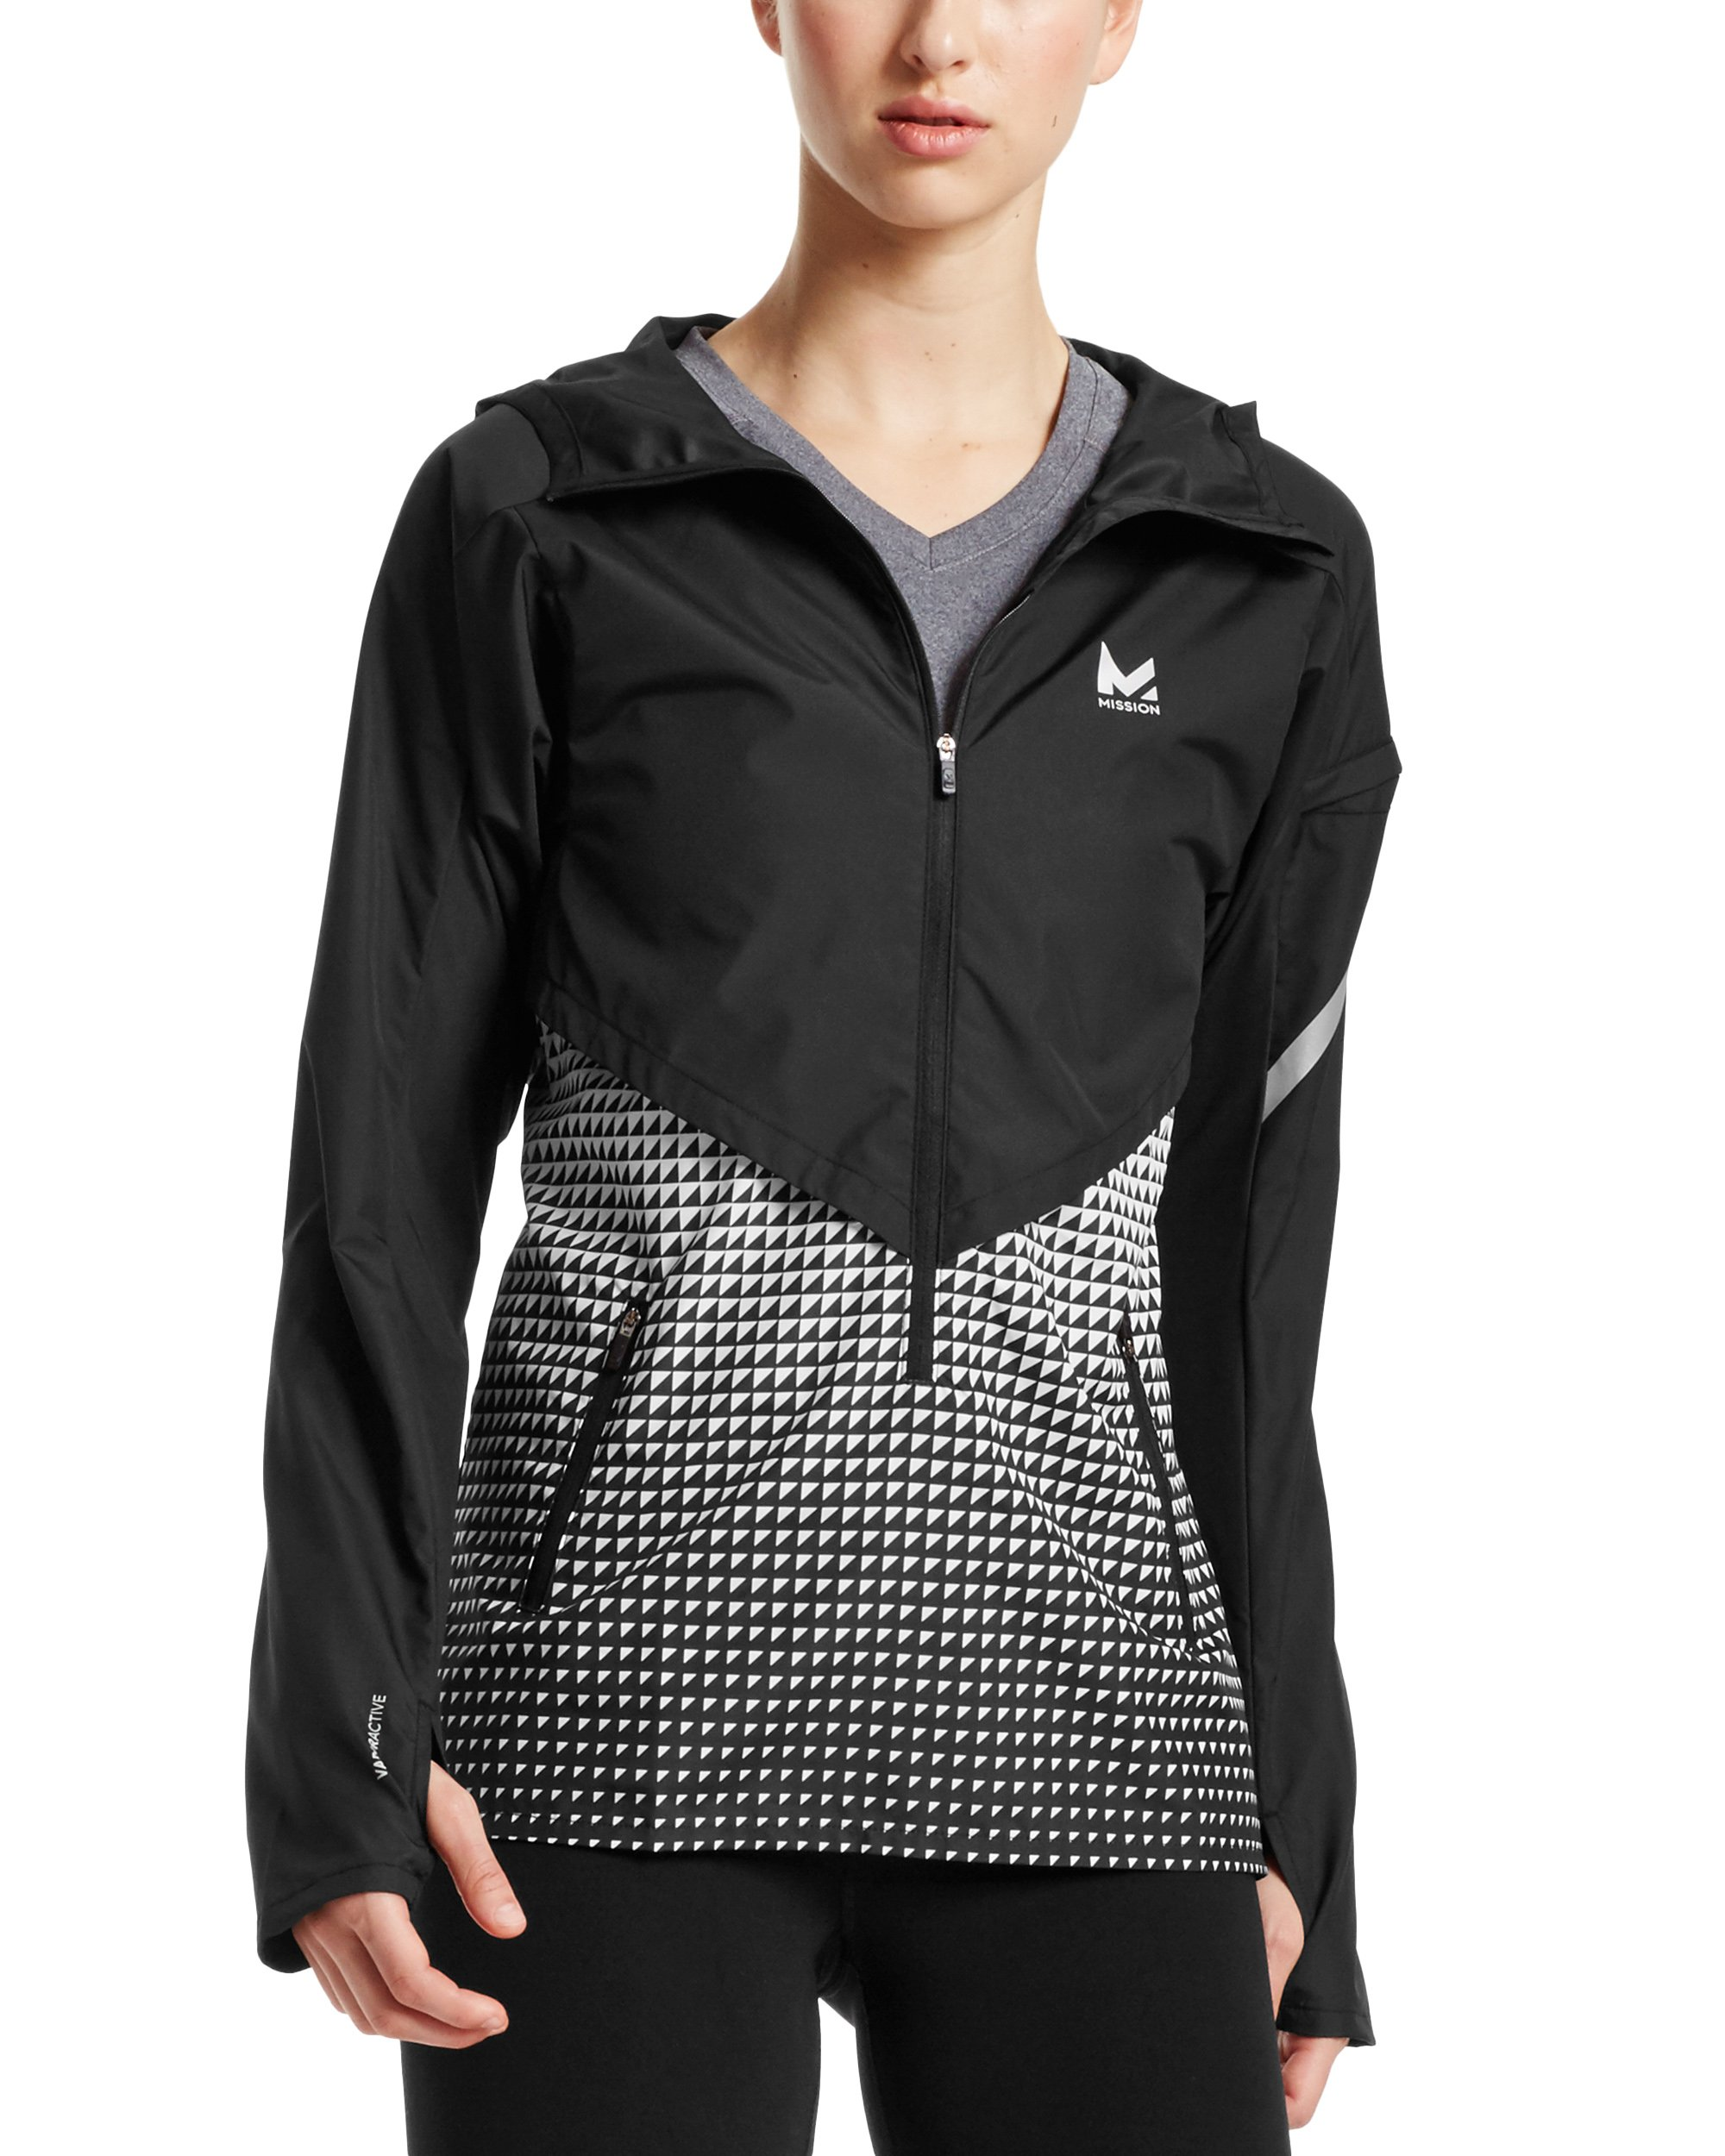 Mission Women's VaporActive Barometer Running Jacket, Moonless Night/Bright White Ombre, Small by MISSION (Image #1)